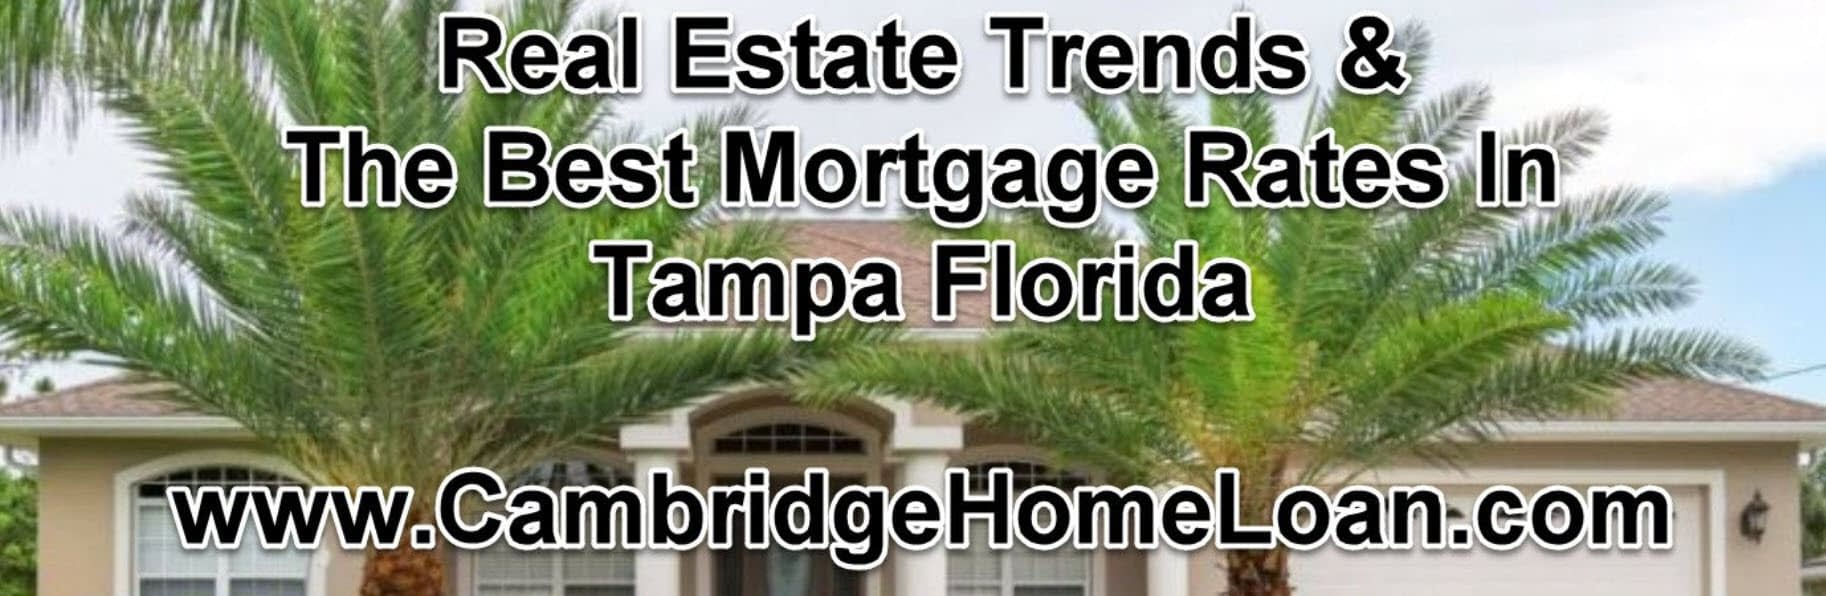 tampa home loan